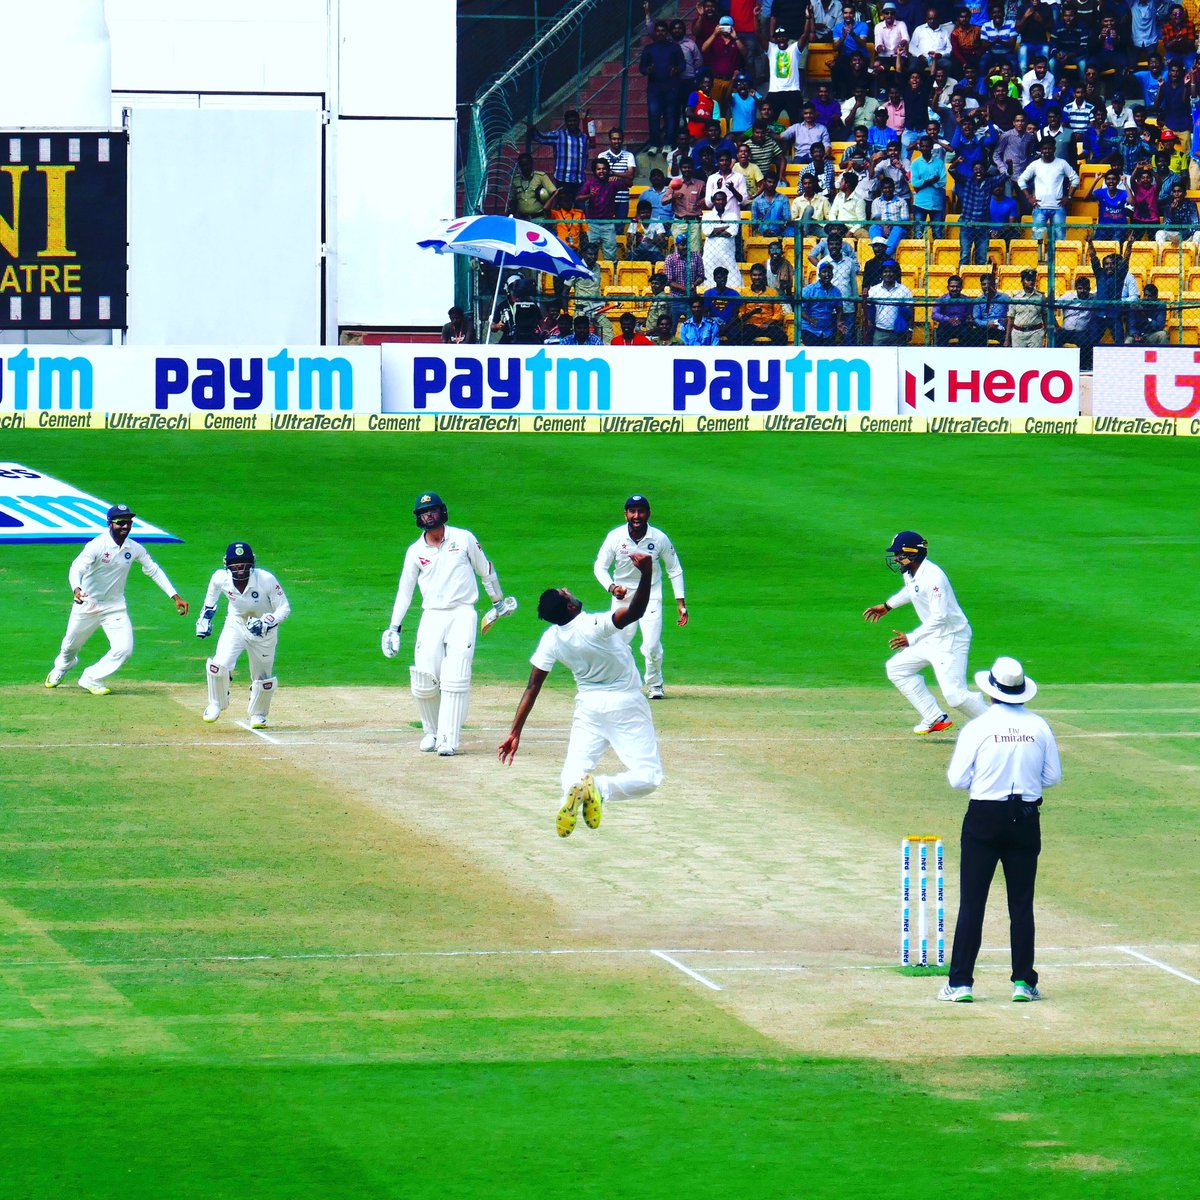 Best cricket match of my life!! https://t.co/nrswN7a1nt